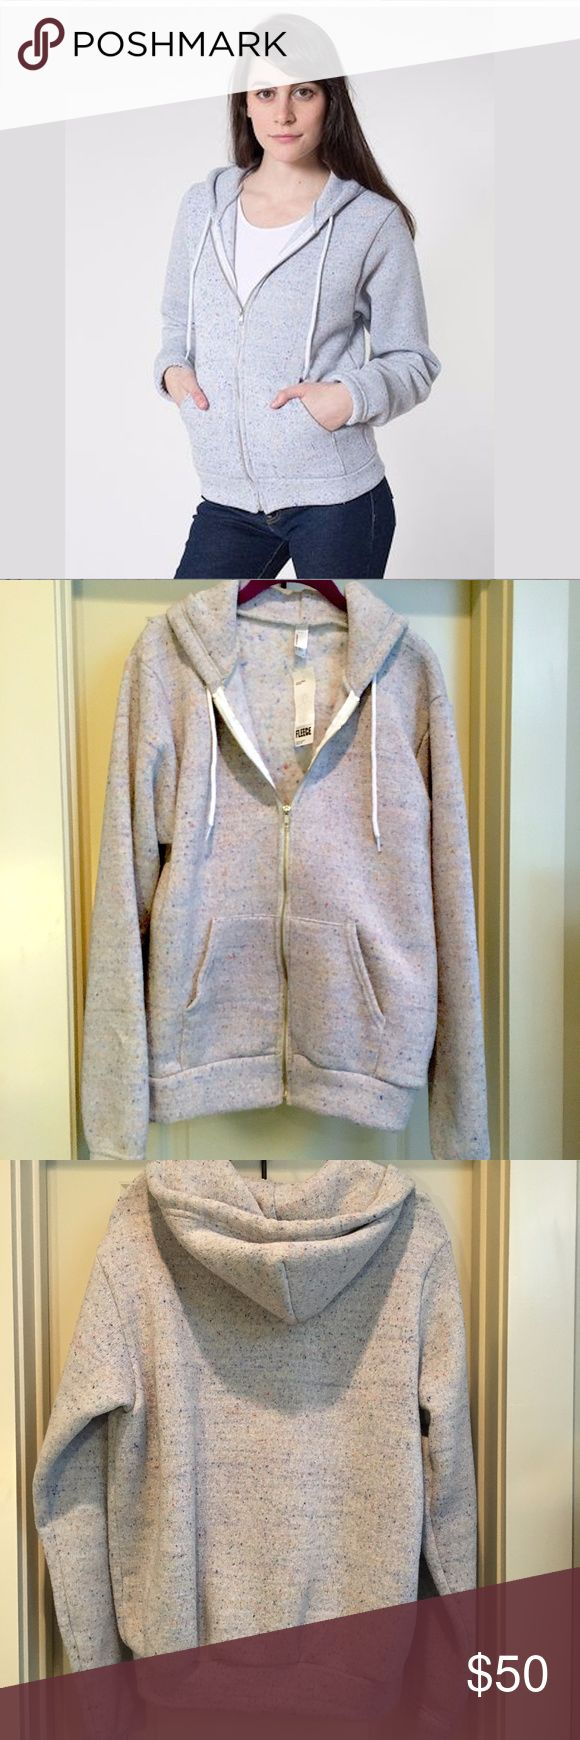 American Apparel Unisex Fleece Hoodie Confetti NWT *BRAND NEW--New With Tags, Never Worn! *American Apparel Nantucket Fleece Hoodie White Confetti Unisex *Unisex Size Medium *Light Gray with Speckled Pastel Confetti Colors *Very Warm and Soft Comfortable Zip-Up Jacket with White Drawstring Hood *RARE and No longer made! American Apparel Jackets & Coats